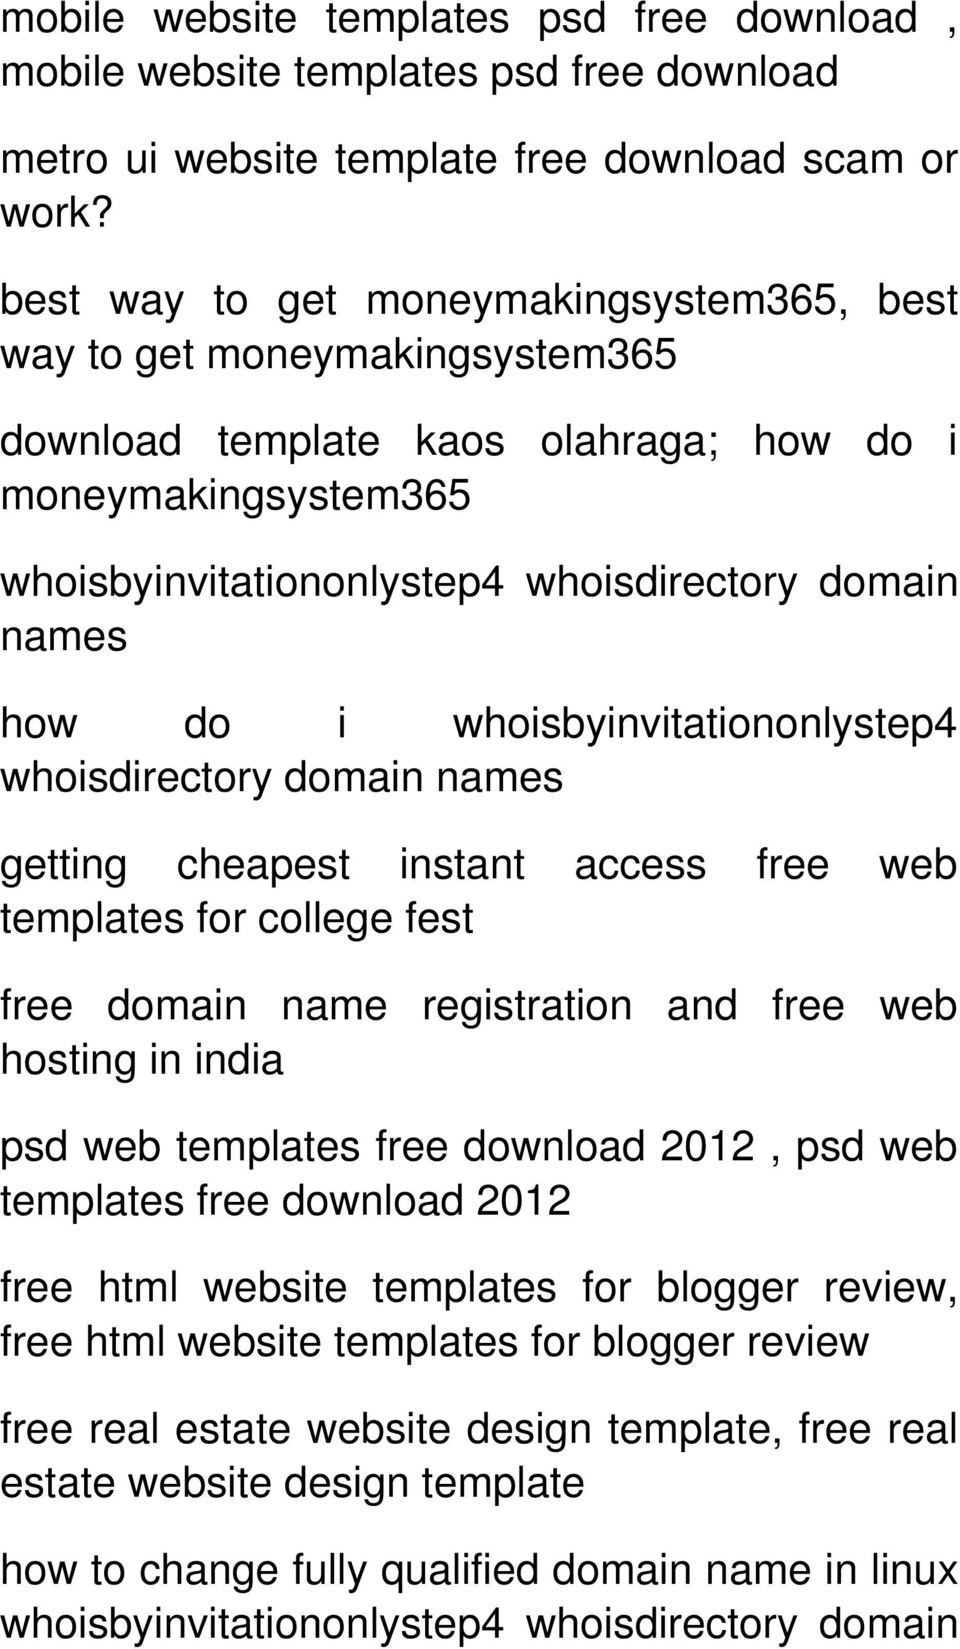 domain getting cheapest instant access free web templates for college fest free domain name registration and free web hosting in india psd web templates free download 2012, psd web templates